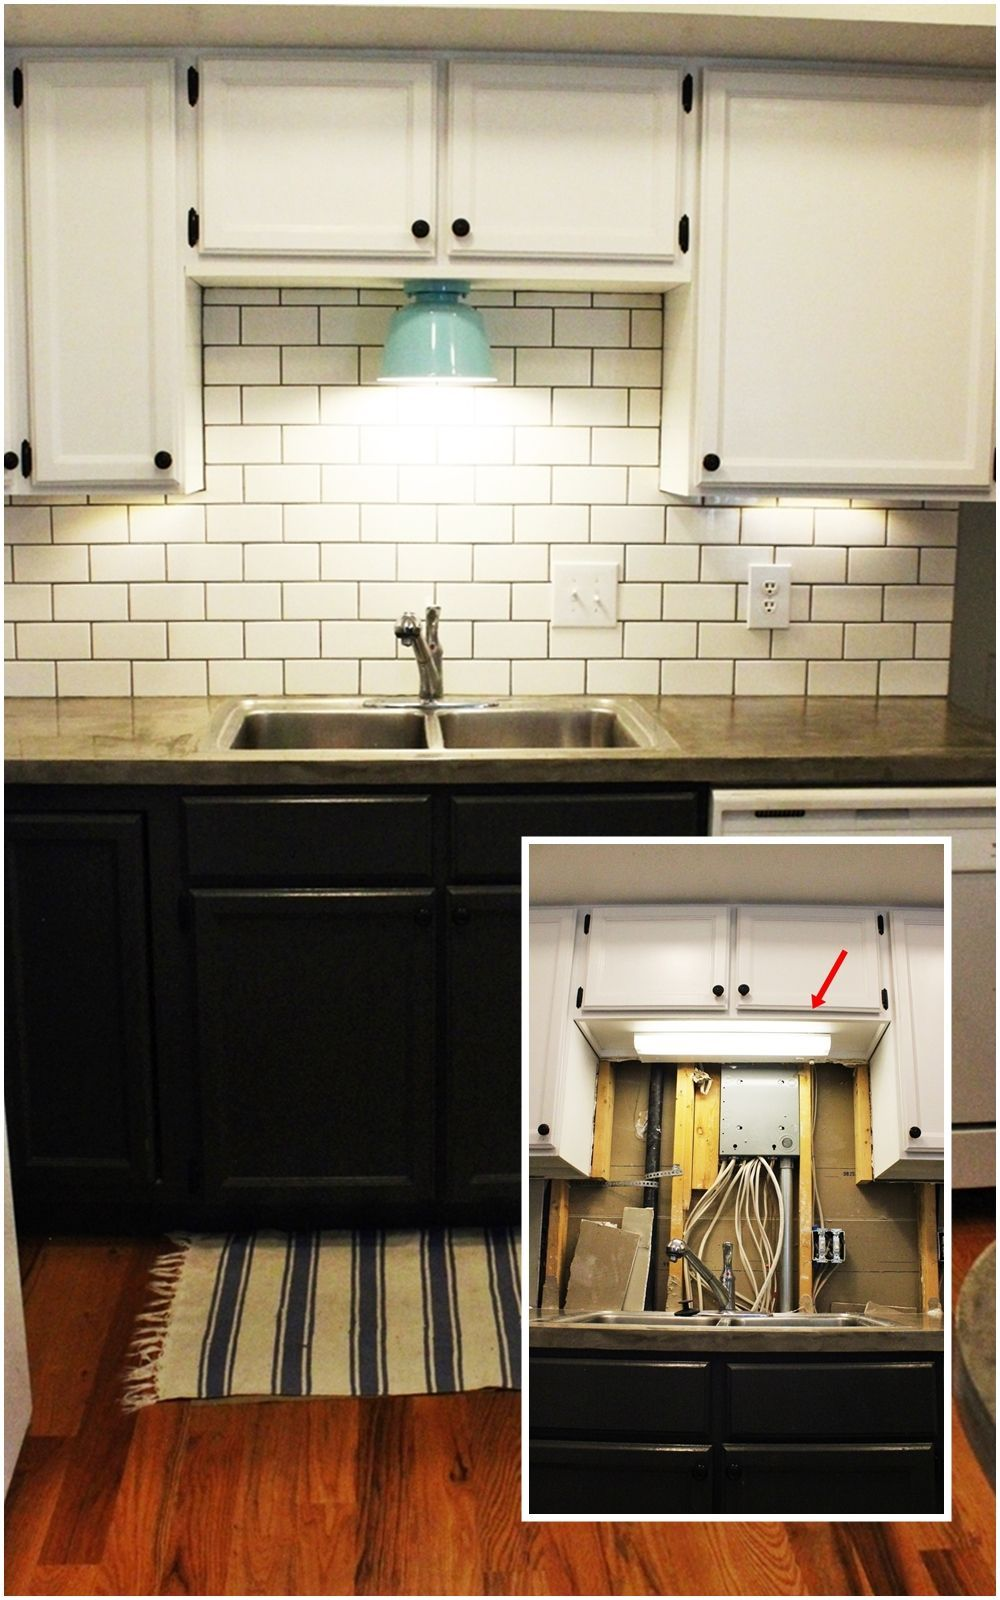 DIY Kitchen Lighting Upgrade: LED Under-Cabinet Lights & Above-the on under counter kitchen lights, under counter led light bulbs, under counter led fixtures, under counter kitchen cart, under counter kitchen lighting fixtures,